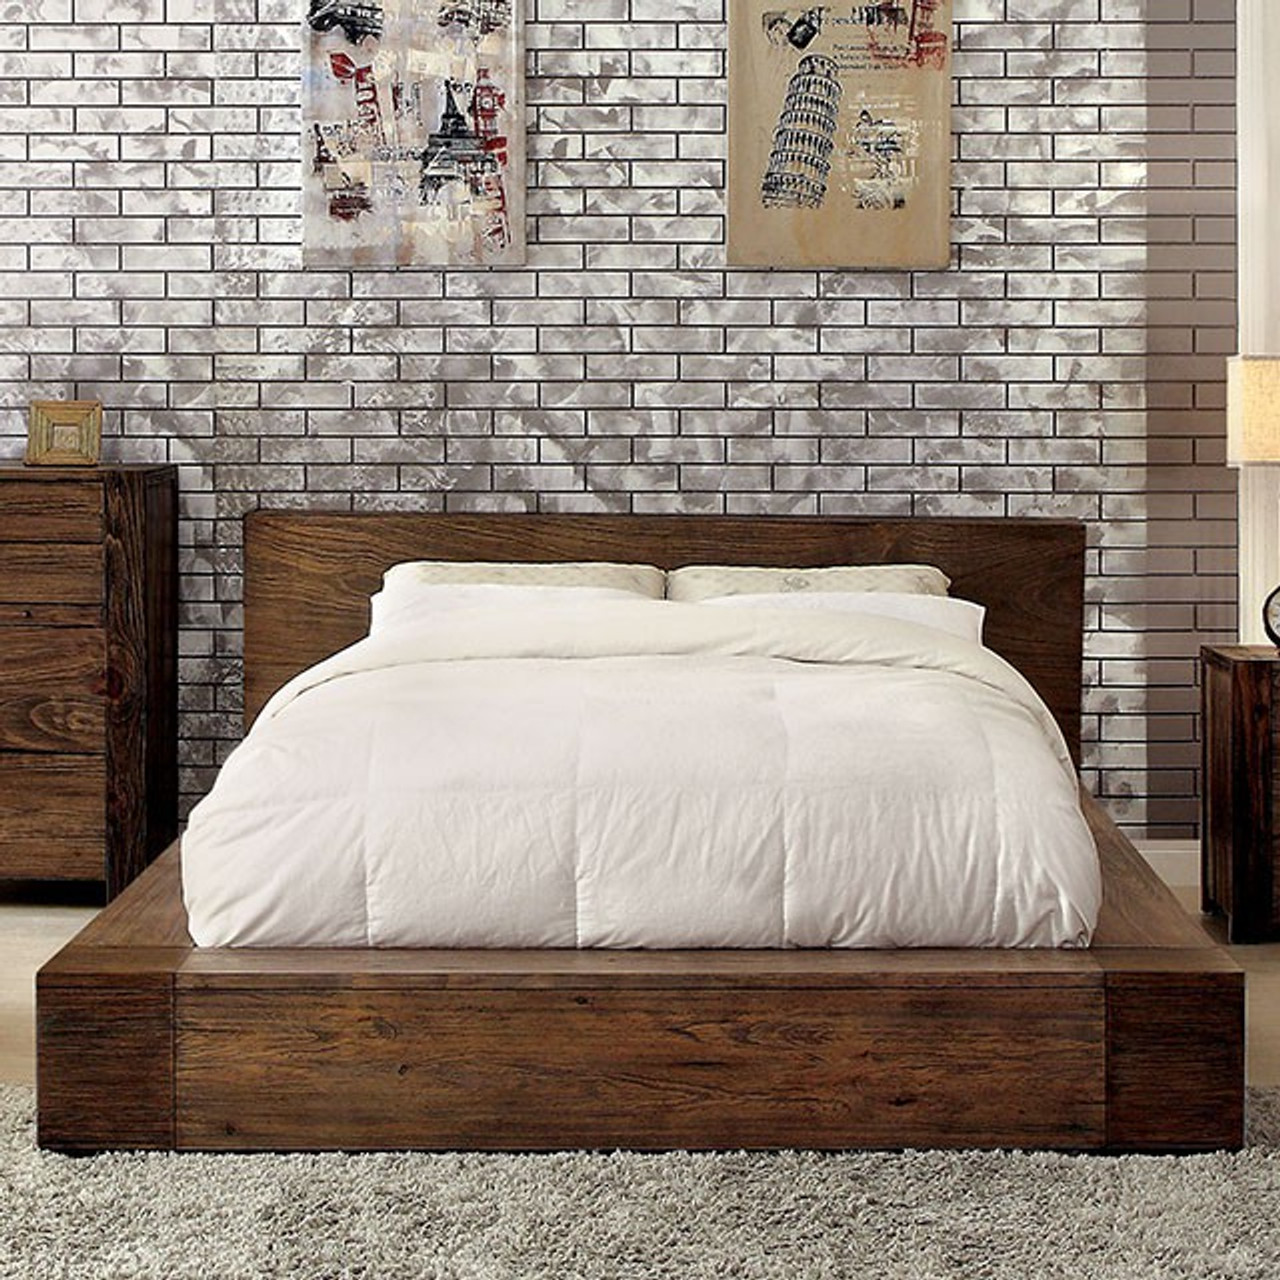 27dce1a541b Janeiro Bed (Multiple Sizes)